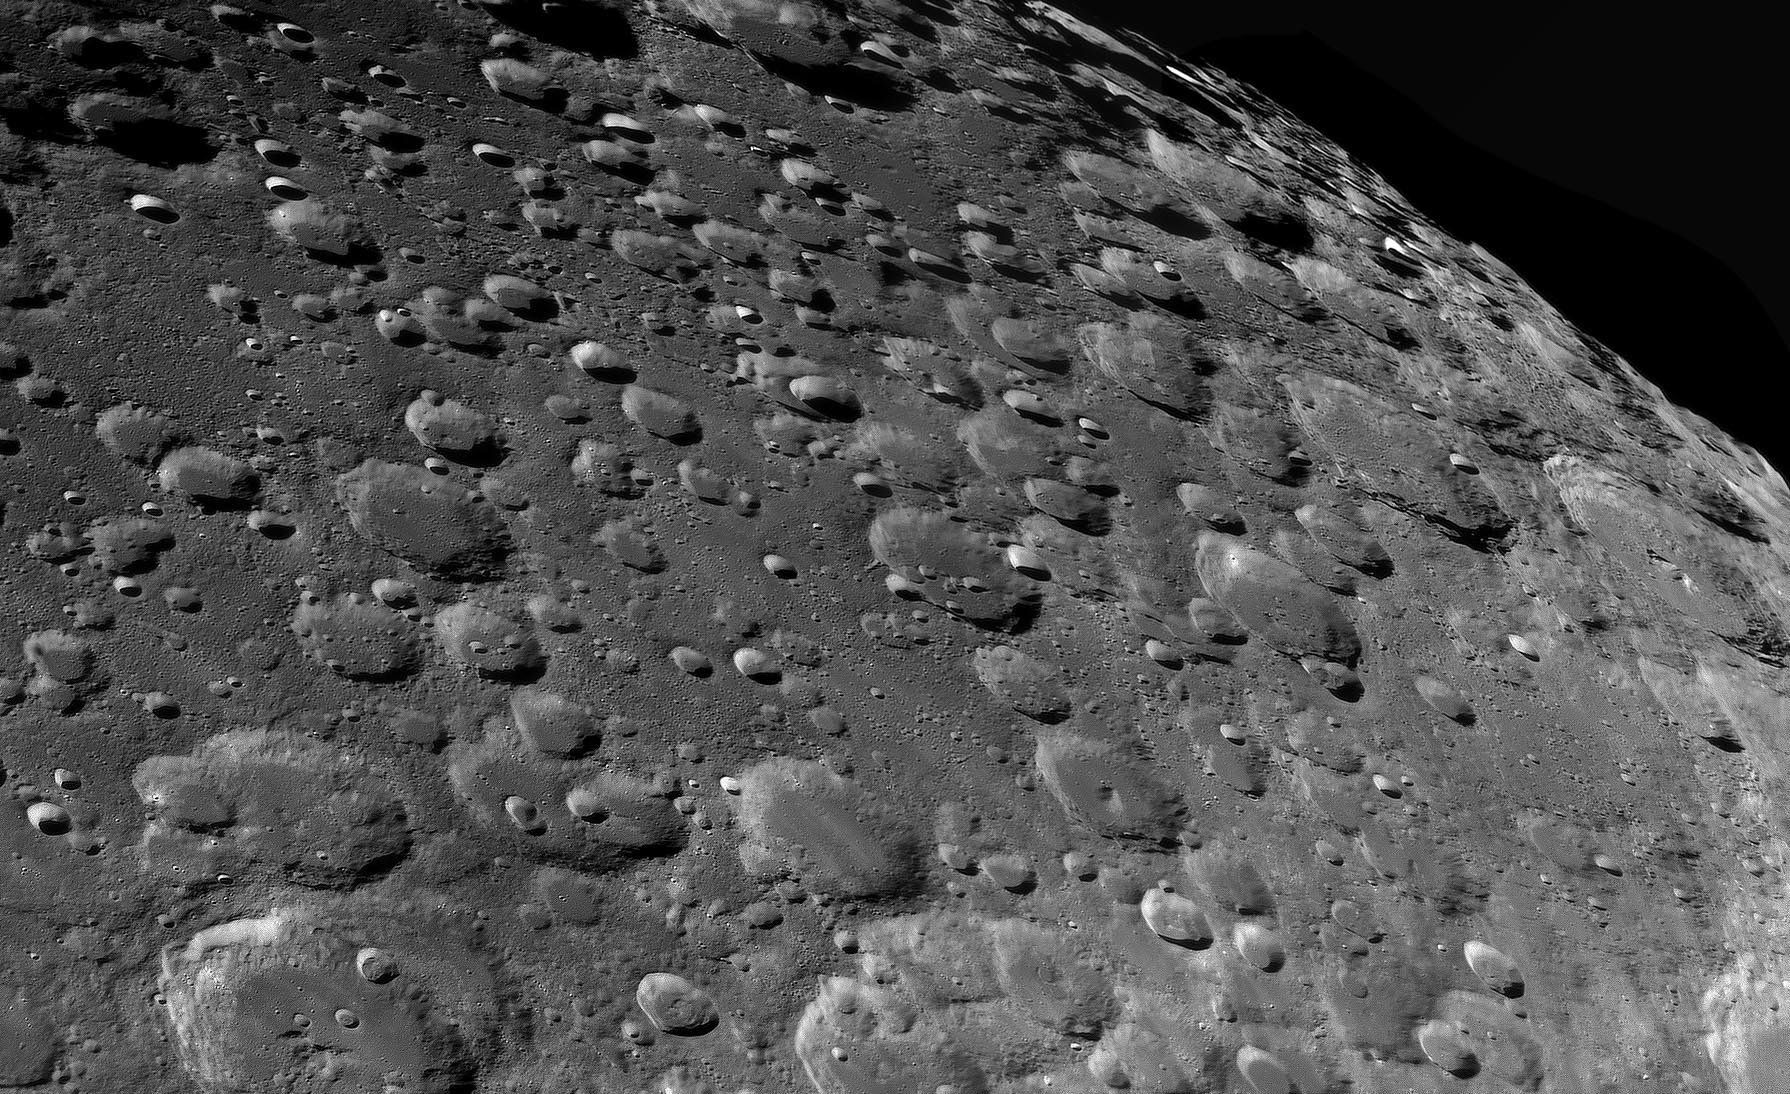 A close-up view of the lunar landscape littered with craters and craterlets largely forged by the impact ofmeteors and